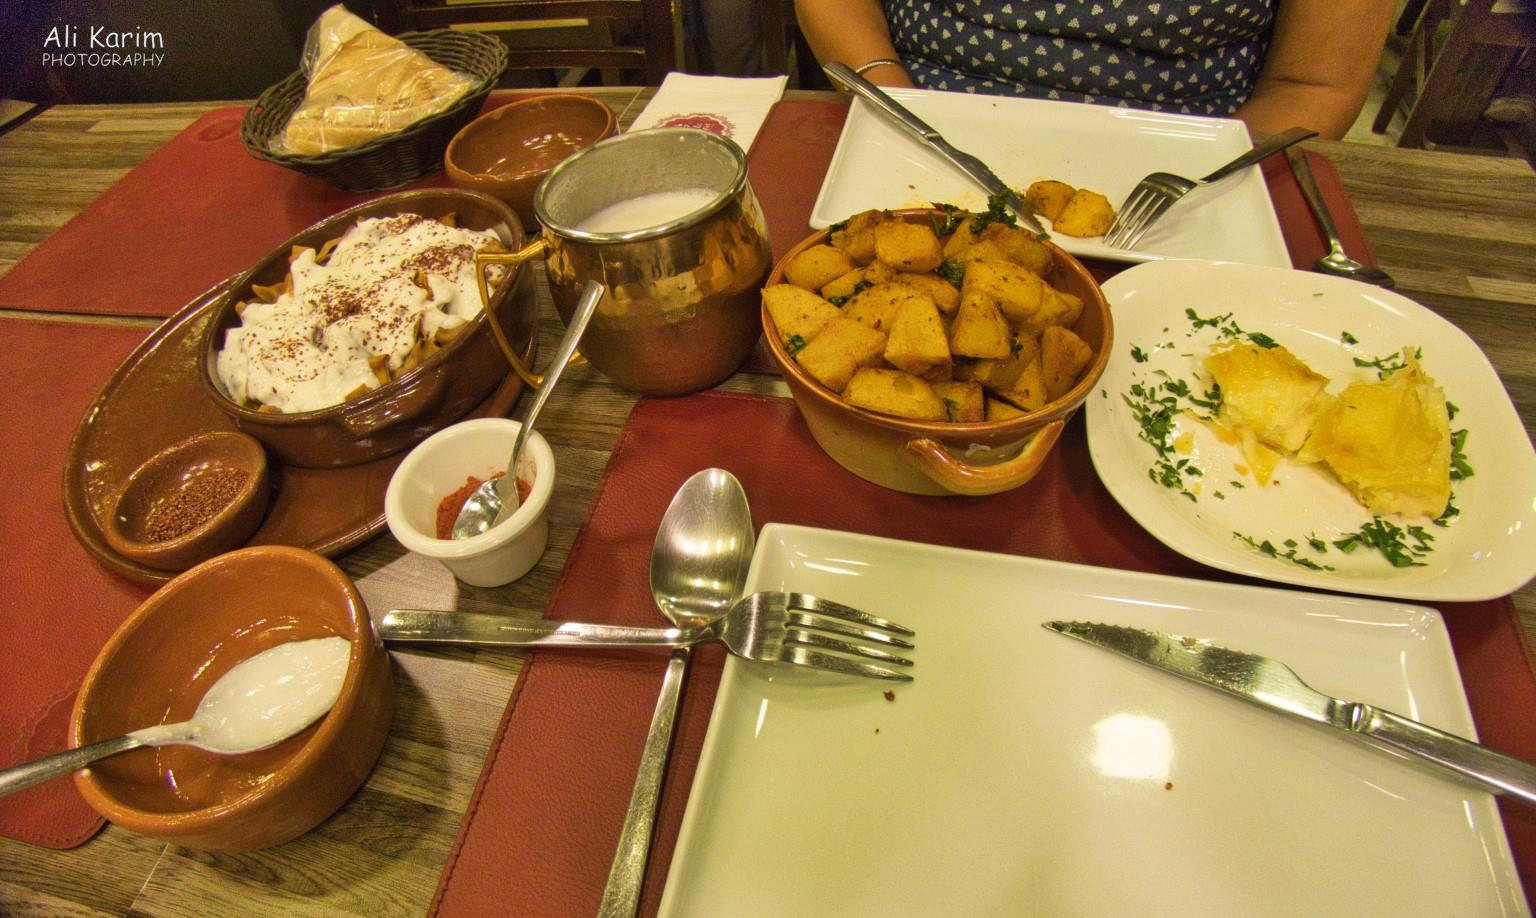 Beirut Armenian dinner of Subeurek (right) and Manti (left) and potatoes of course :)